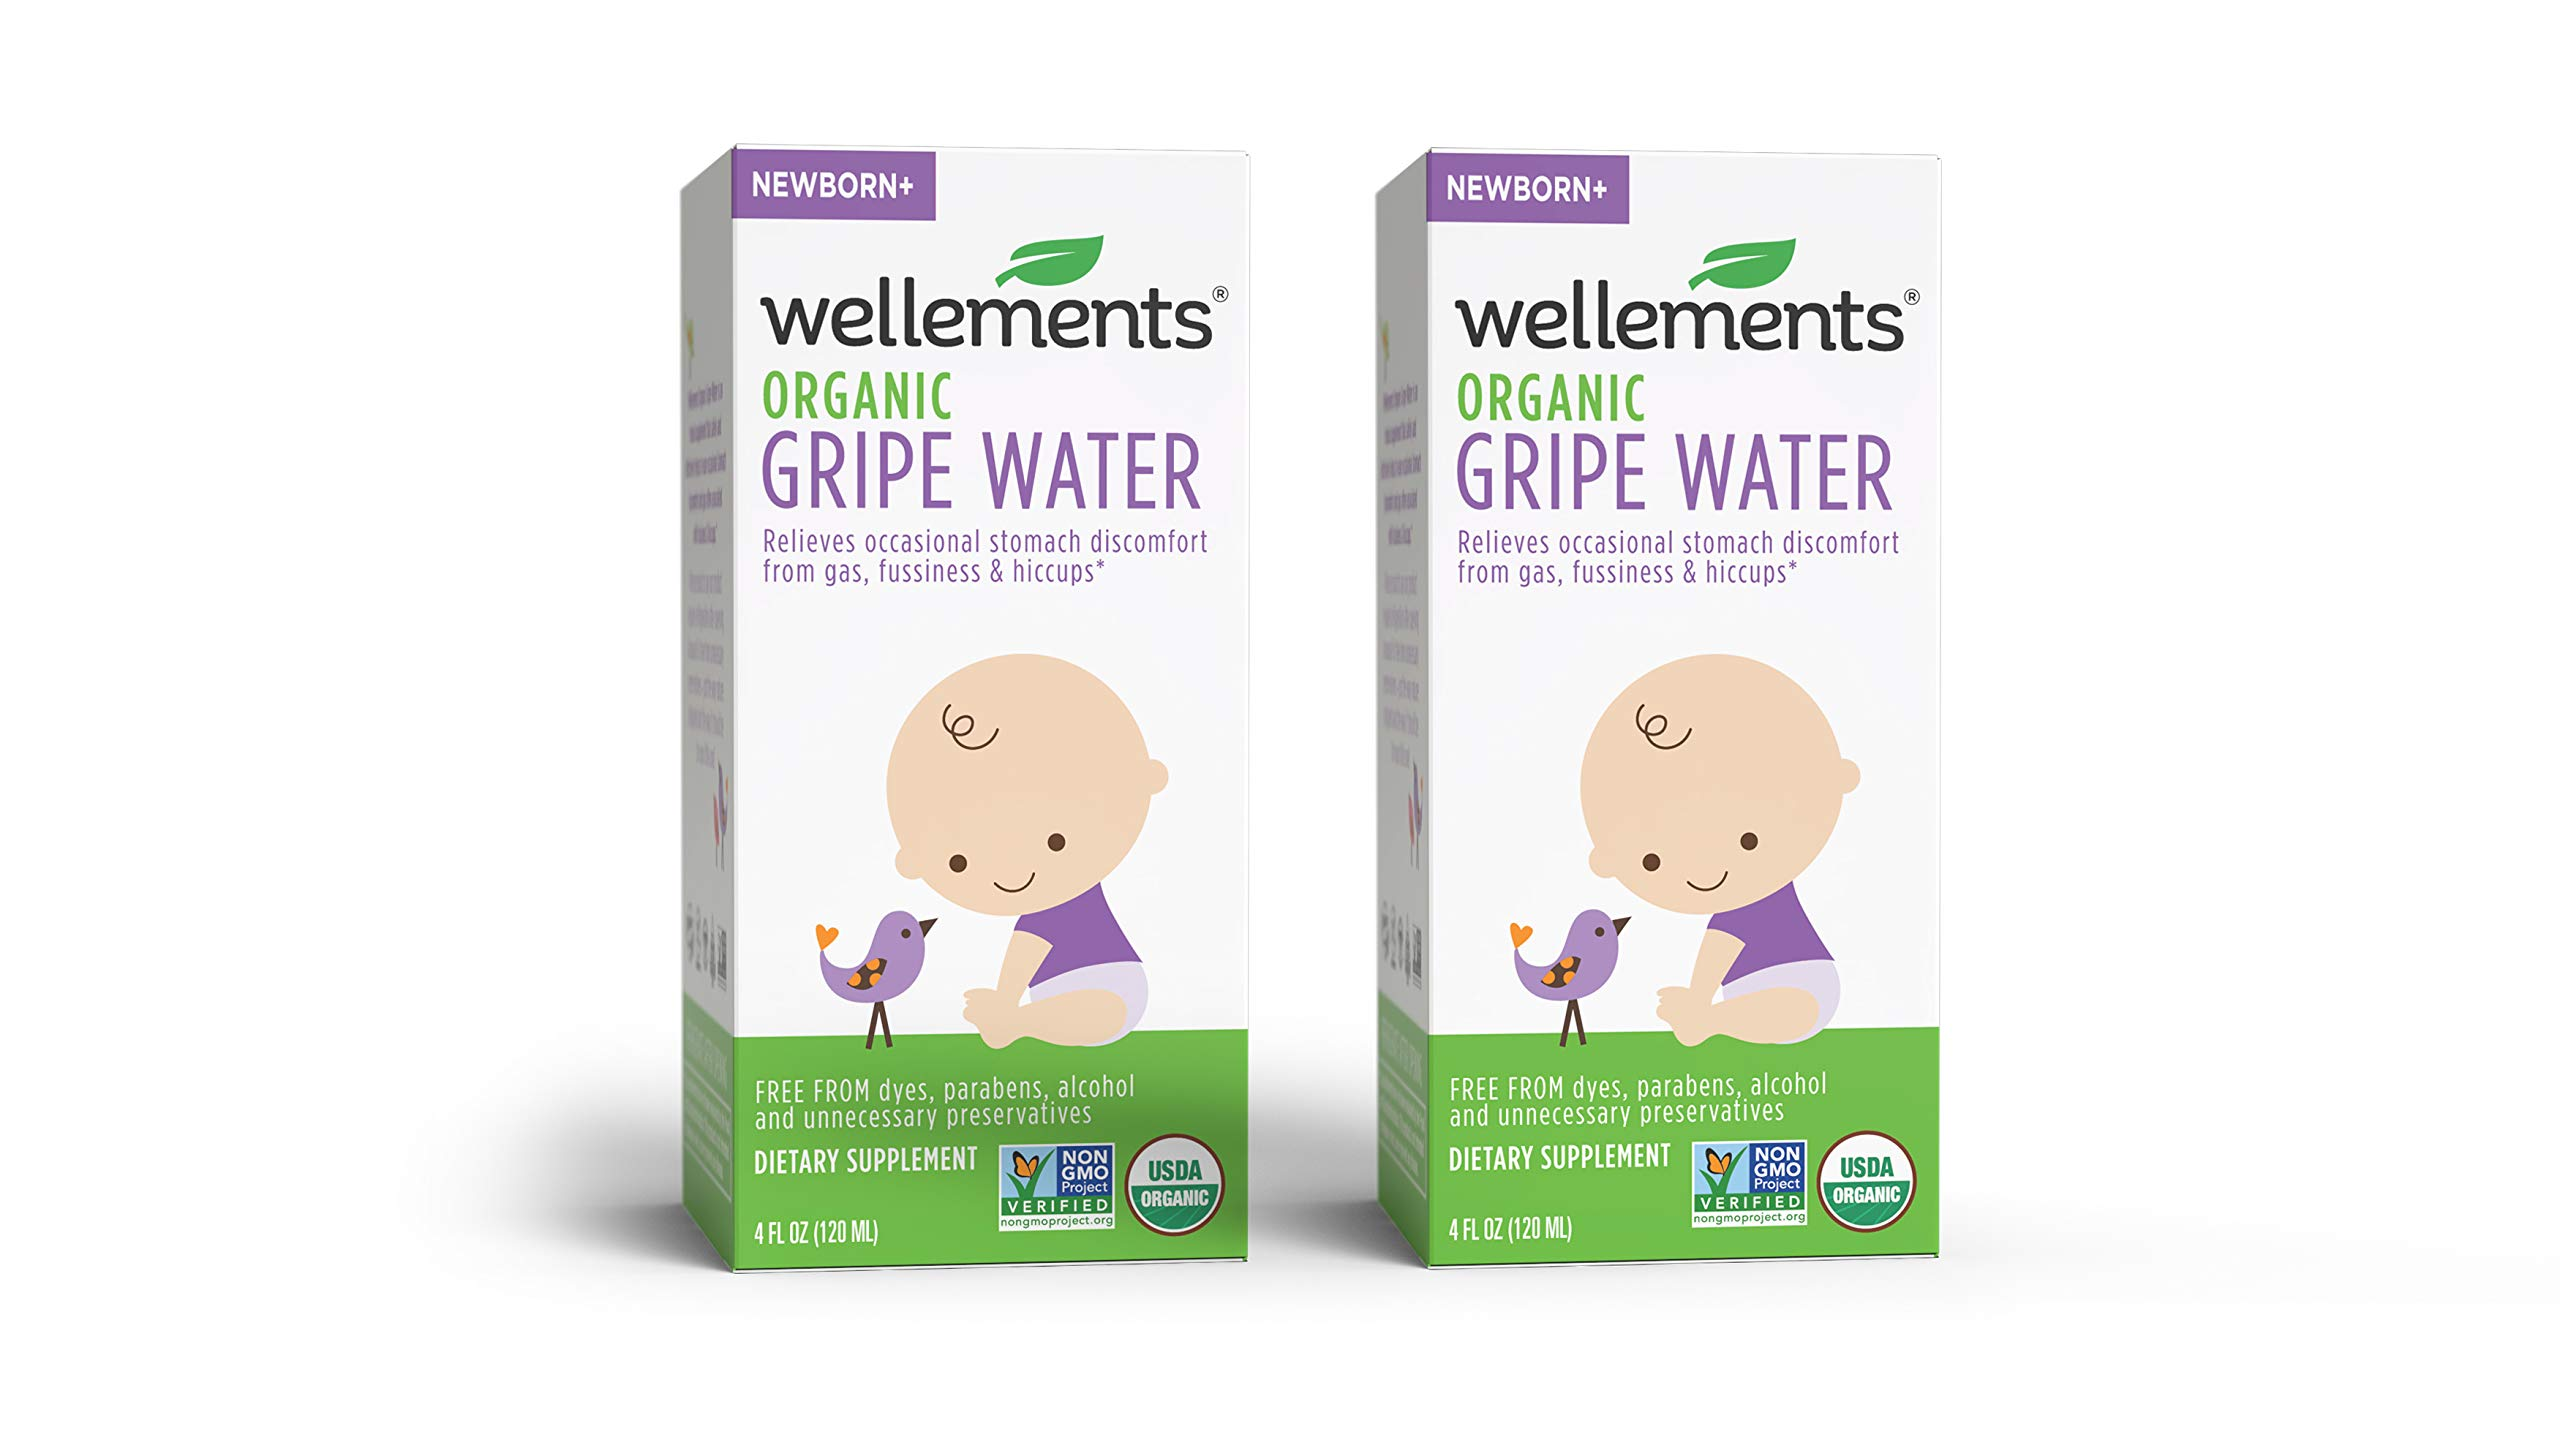 Wellements Organic Gripe Water, 4 Fl Oz (Pack of 2), Eases Baby's Stomach Discomfort, Free From Dyes, Parabens, Alcohol, Preservatives by Wellements